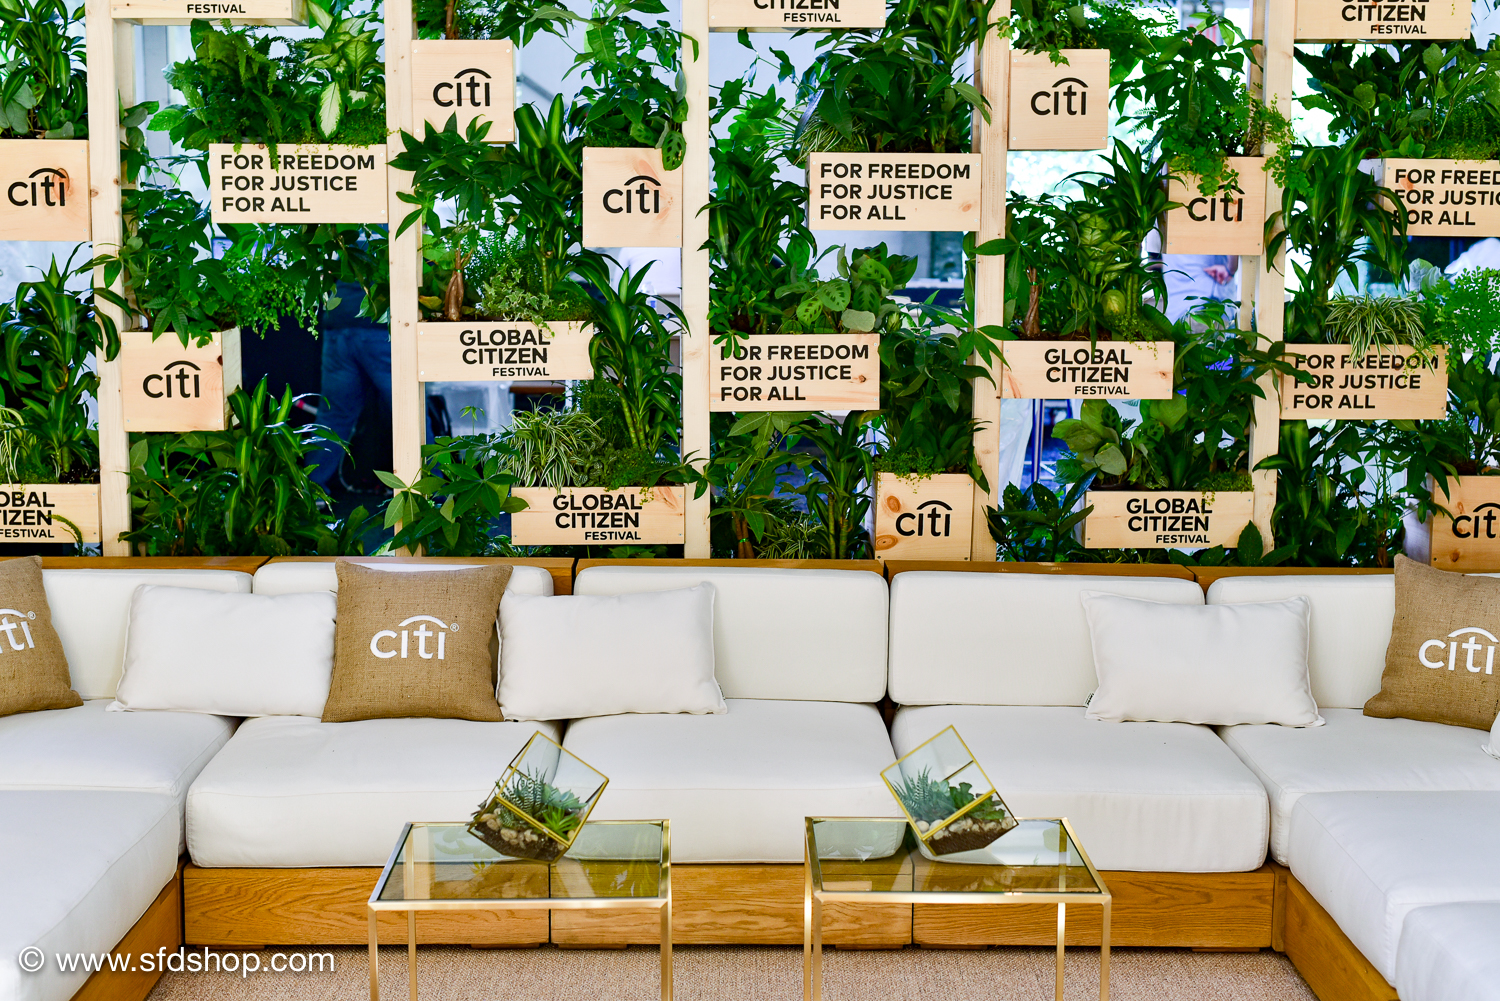 Citi Global Citizen Festival fabricated by SFDS-29.jpg